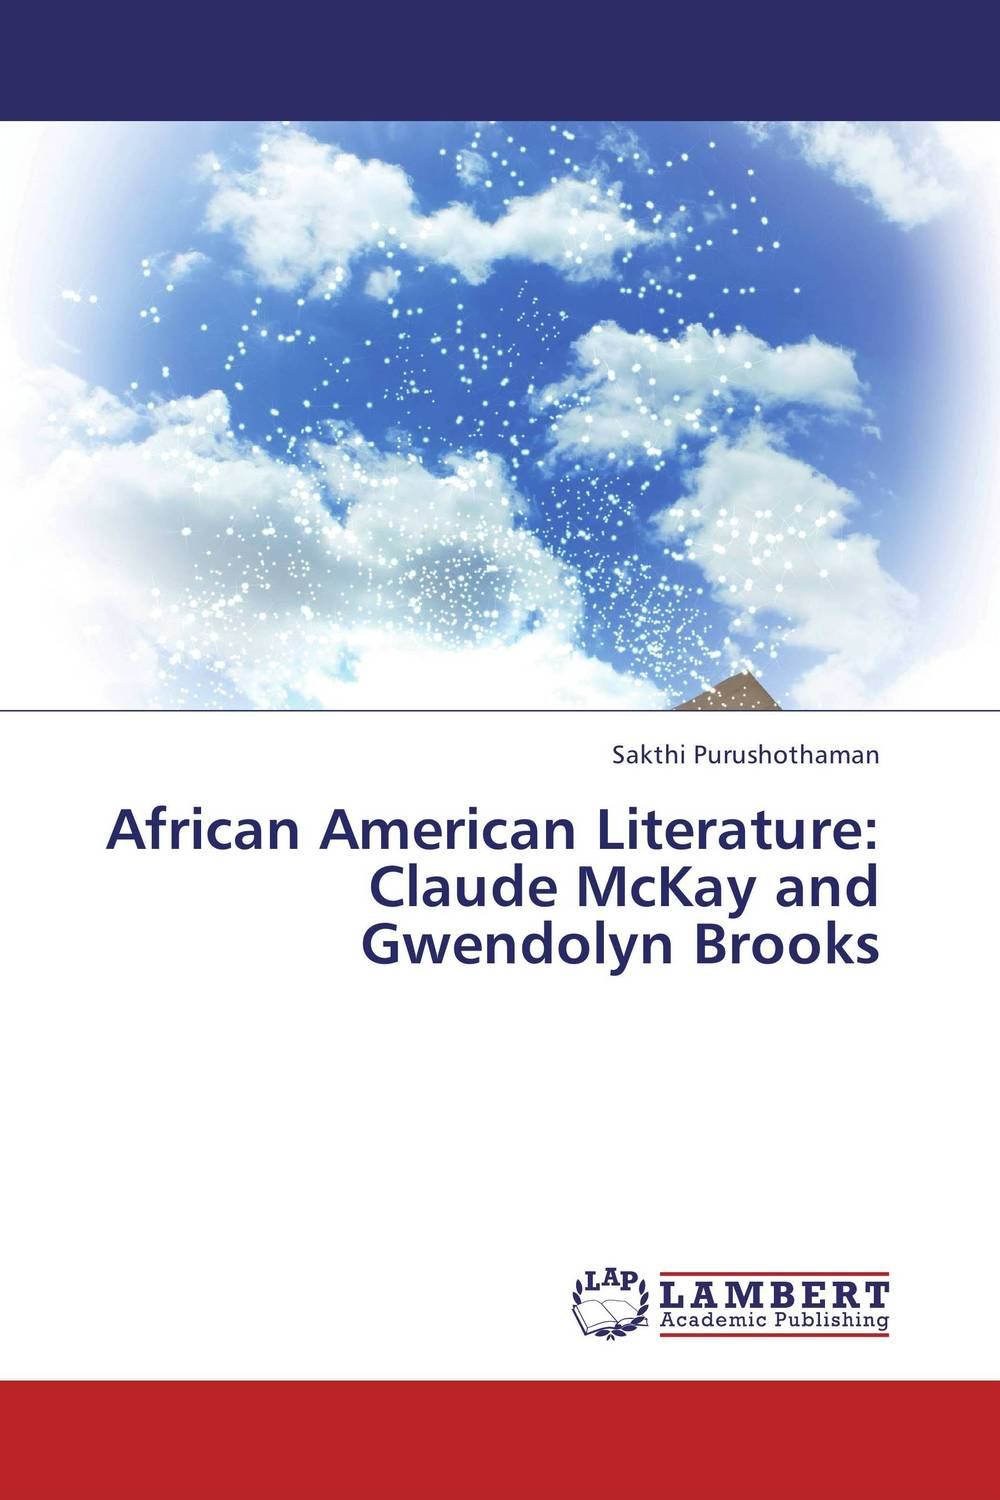 цены African American Literature: Claude McKay and Gwendolyn Brooks